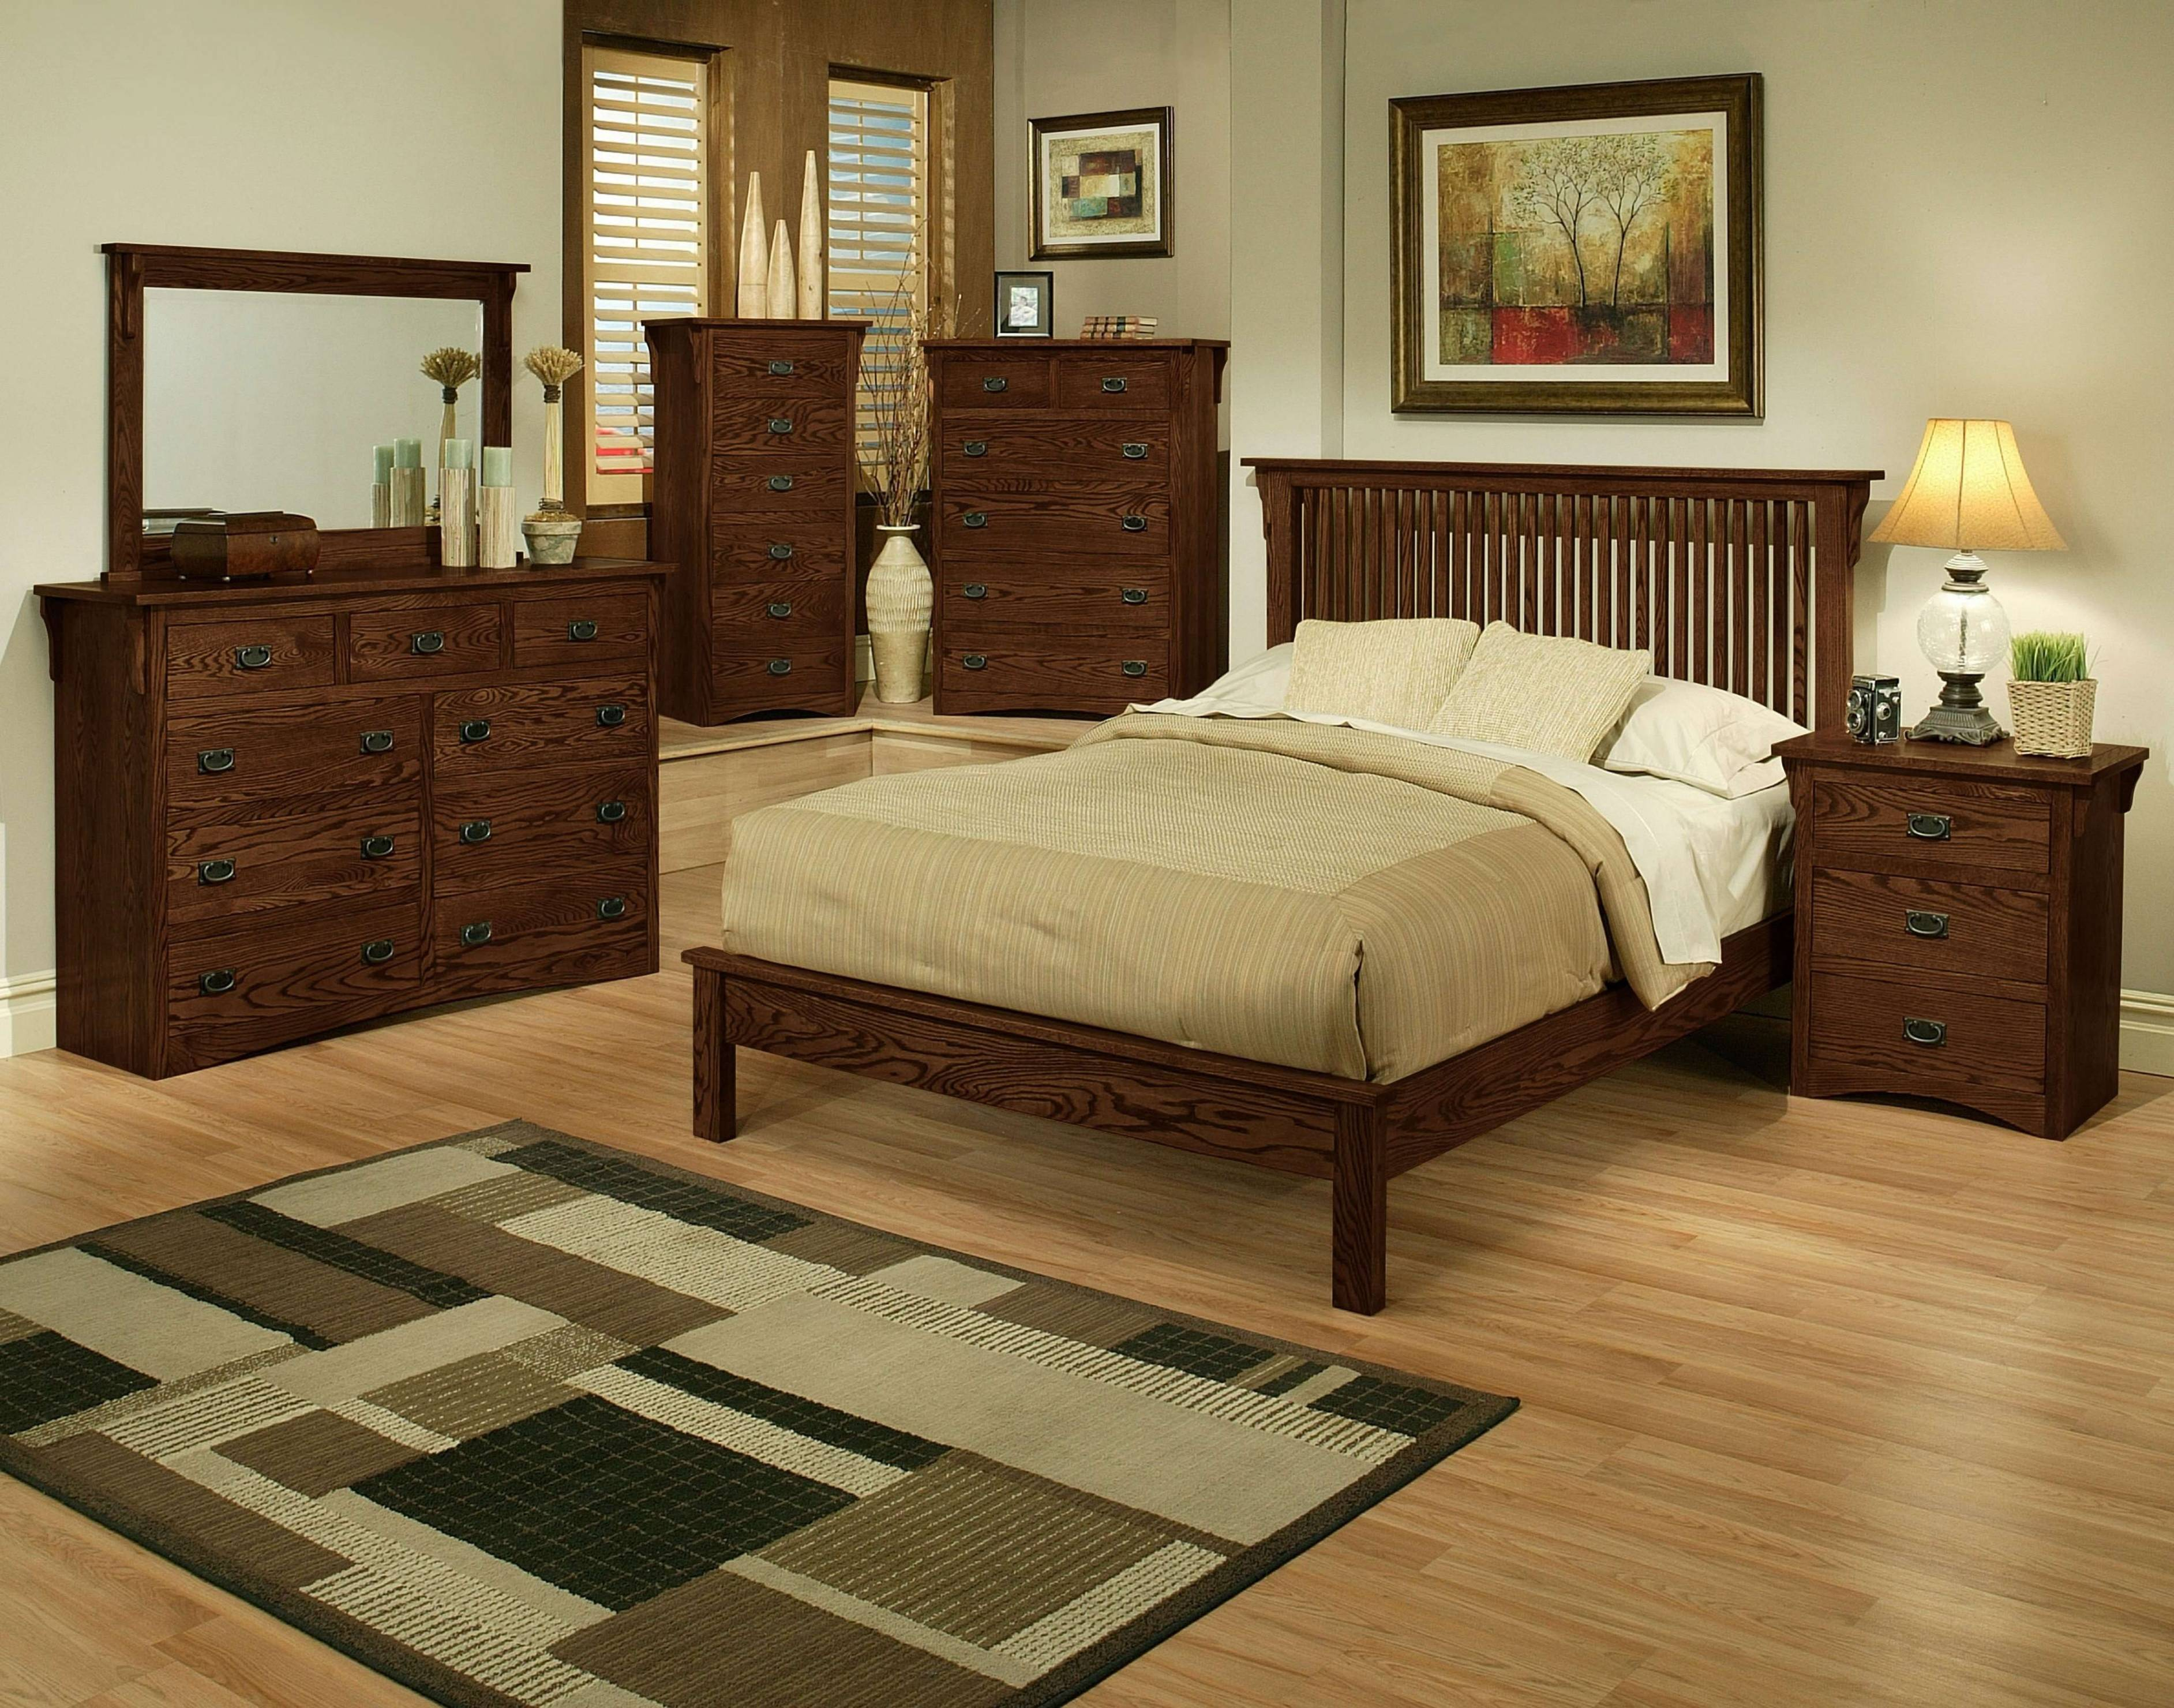 diy hardwood flooring headboard of how wide is a king headboard photos melthphx throughout king size wooden bed frames awesome headboards metal bed frame with